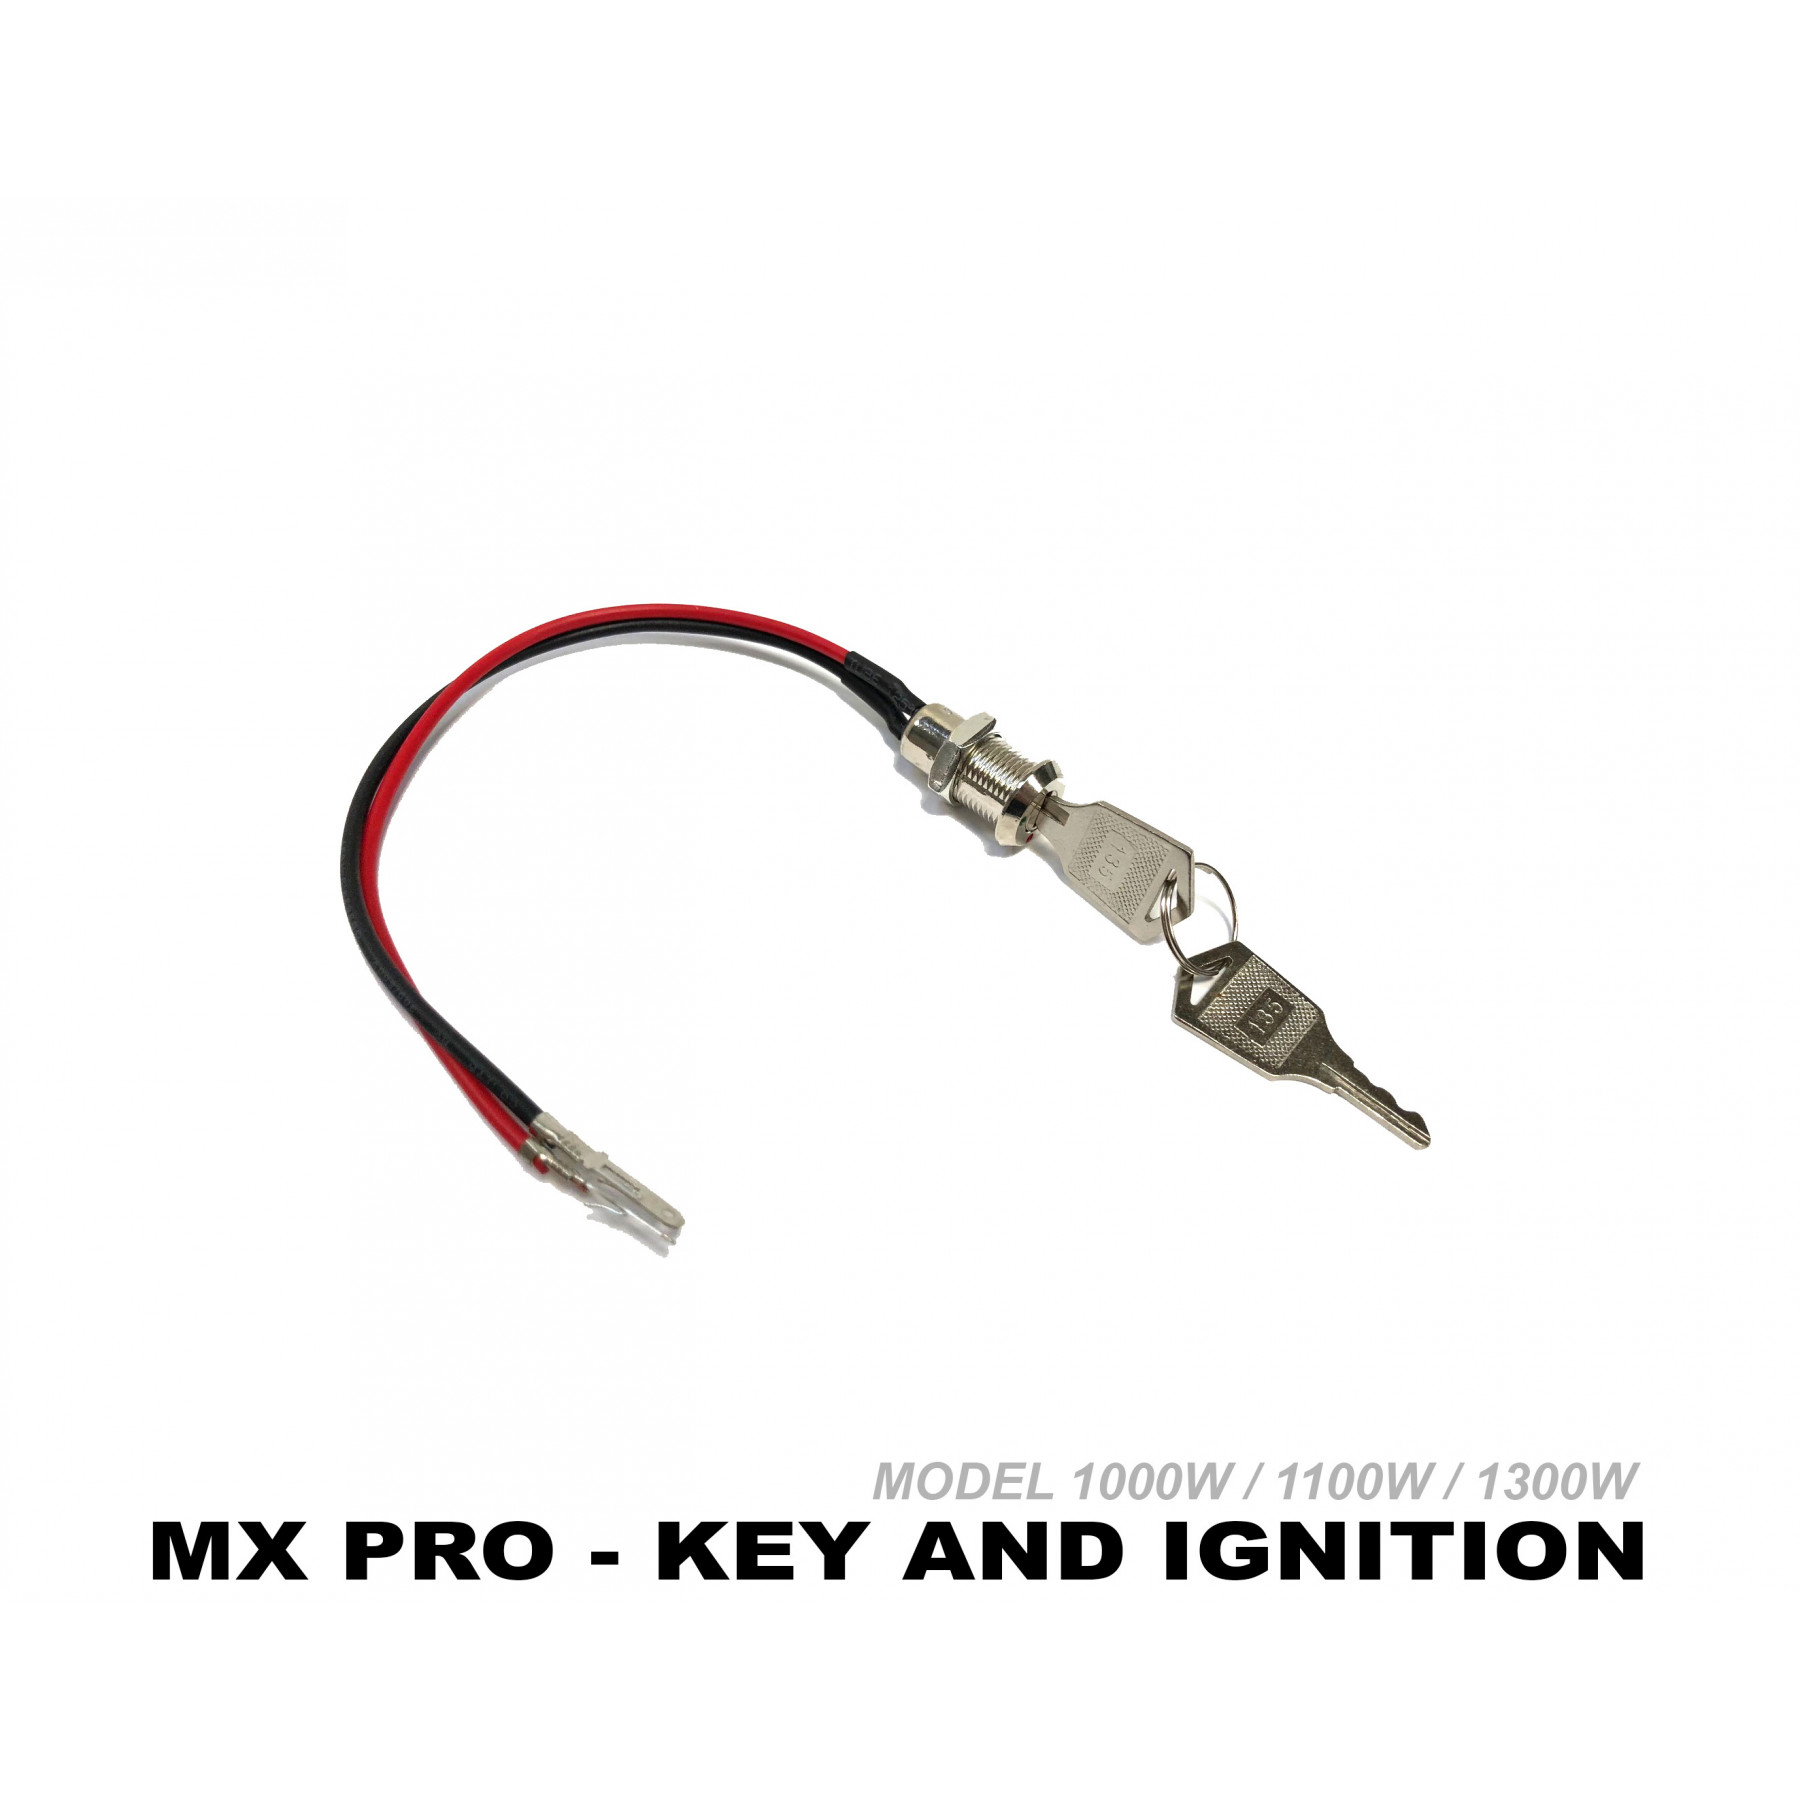 XTREME ELECTRIC XTM MX-PRO 36V REPLACEMENT KEY IGNITION AND KEY